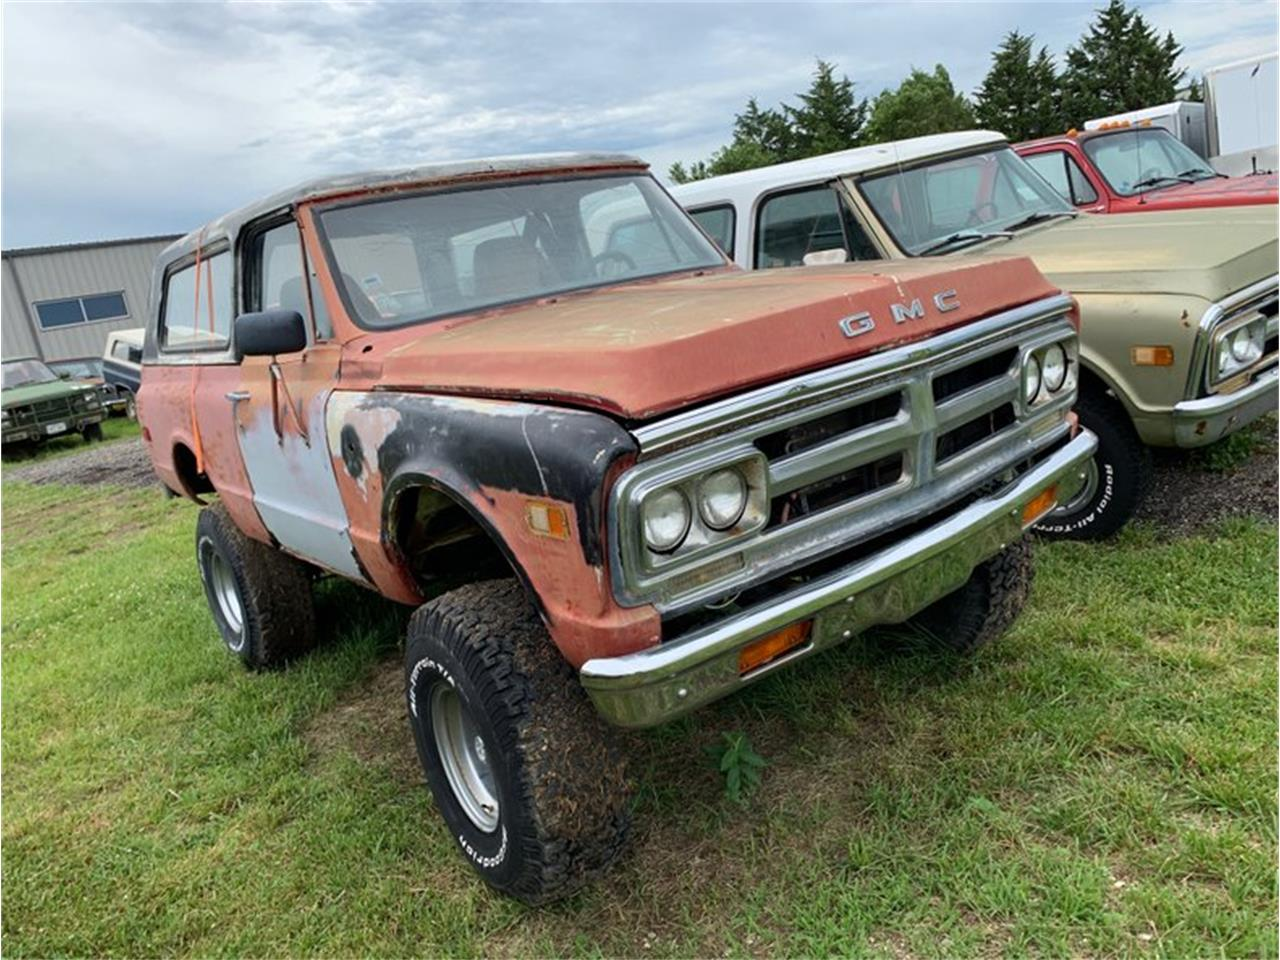 1972 GMC Jimmy for sale in Lincoln, NE – photo 2